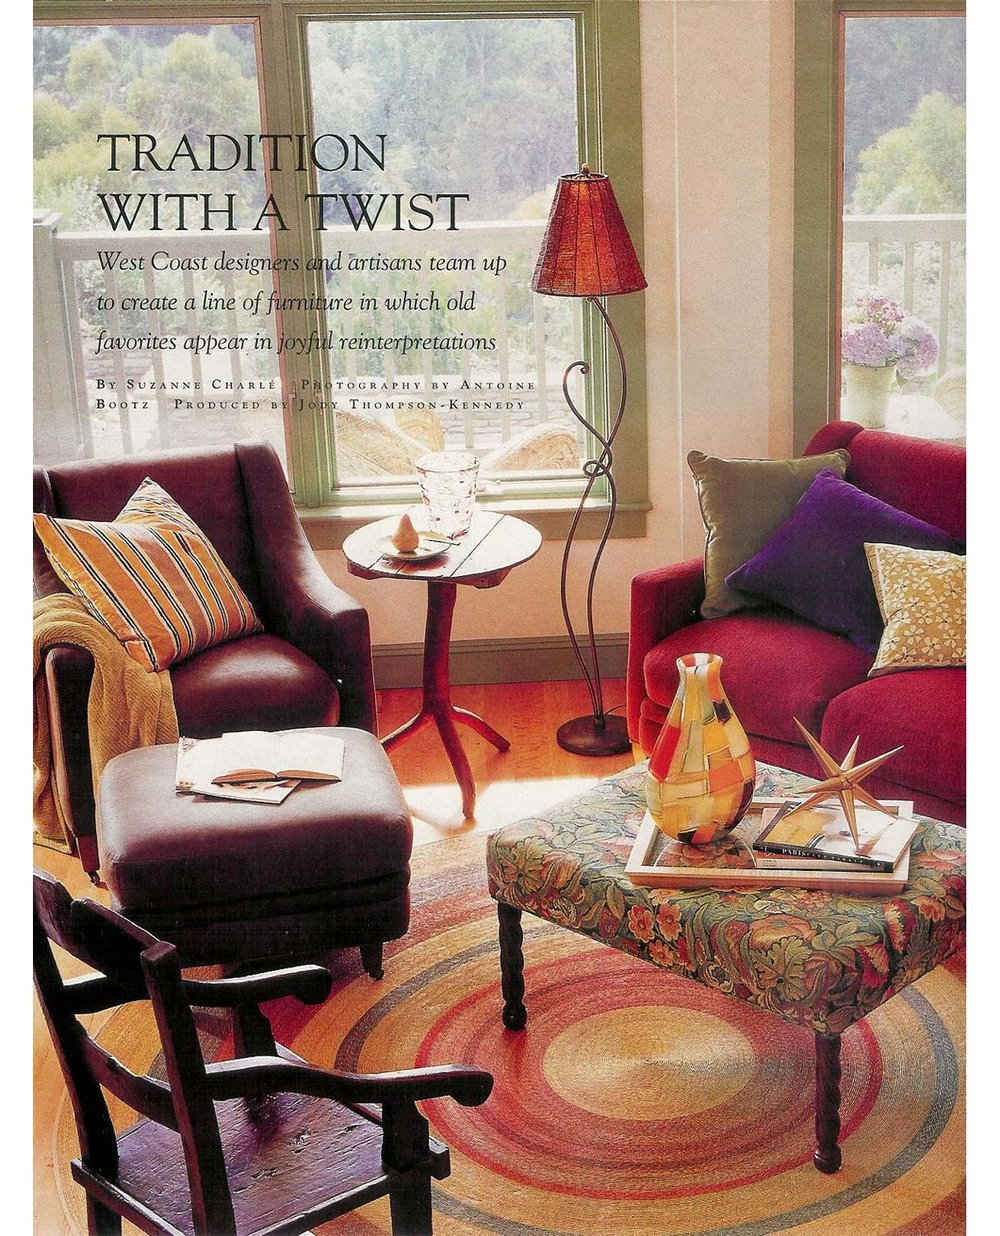 housebeautiful1997-p2_alemanmoore.jpg